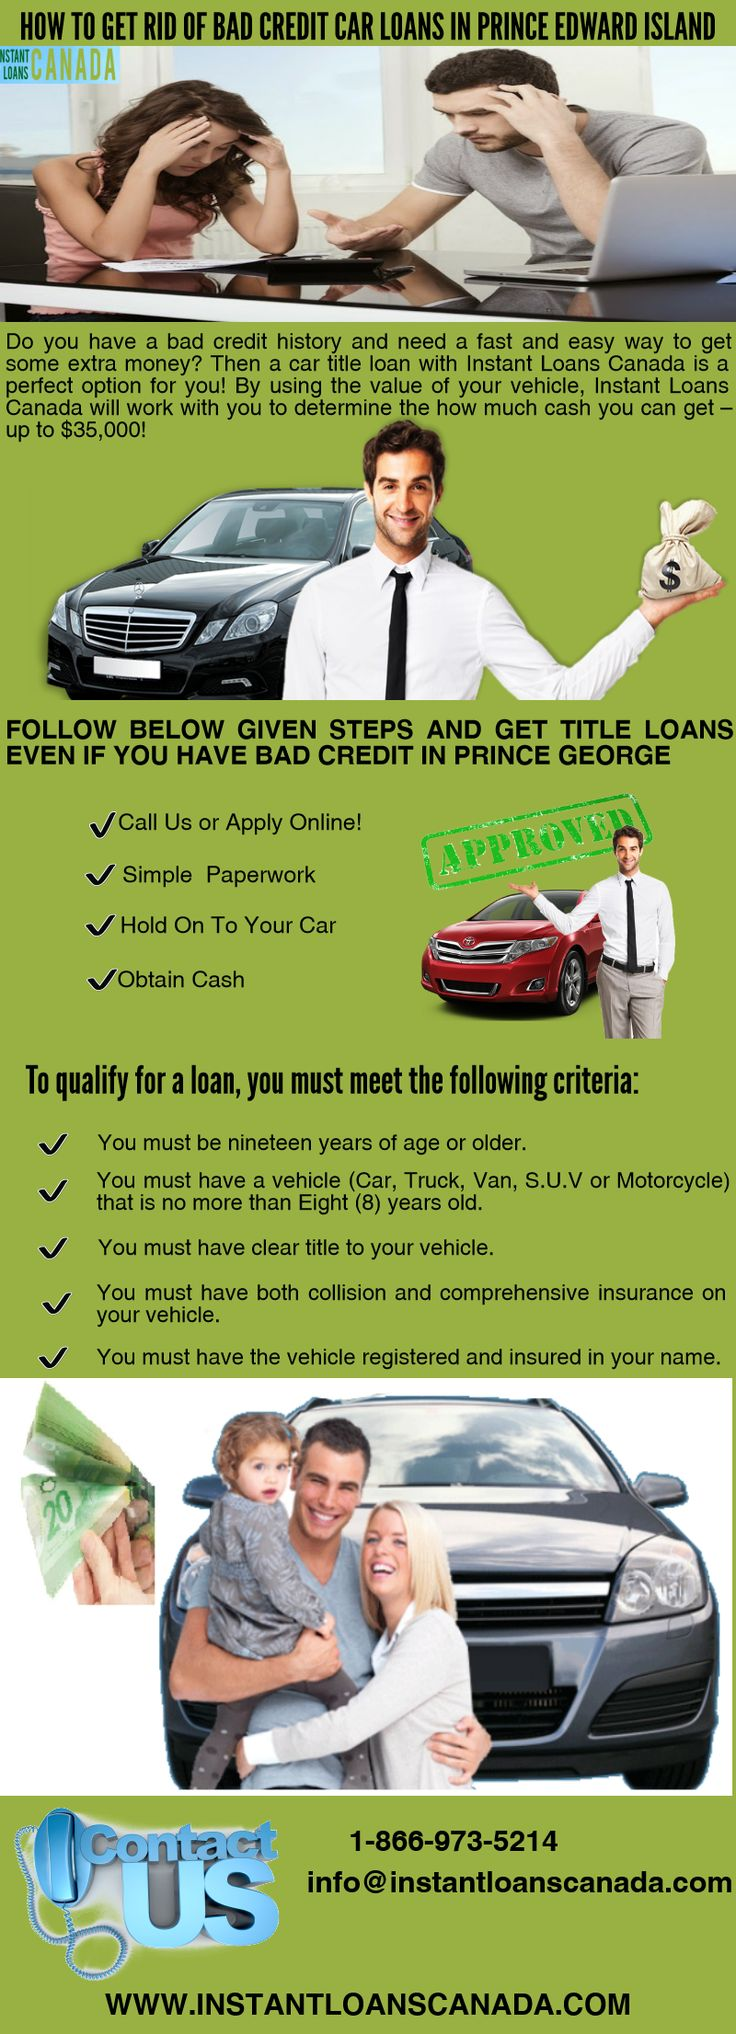 Tennessee cash advance loan photo 10